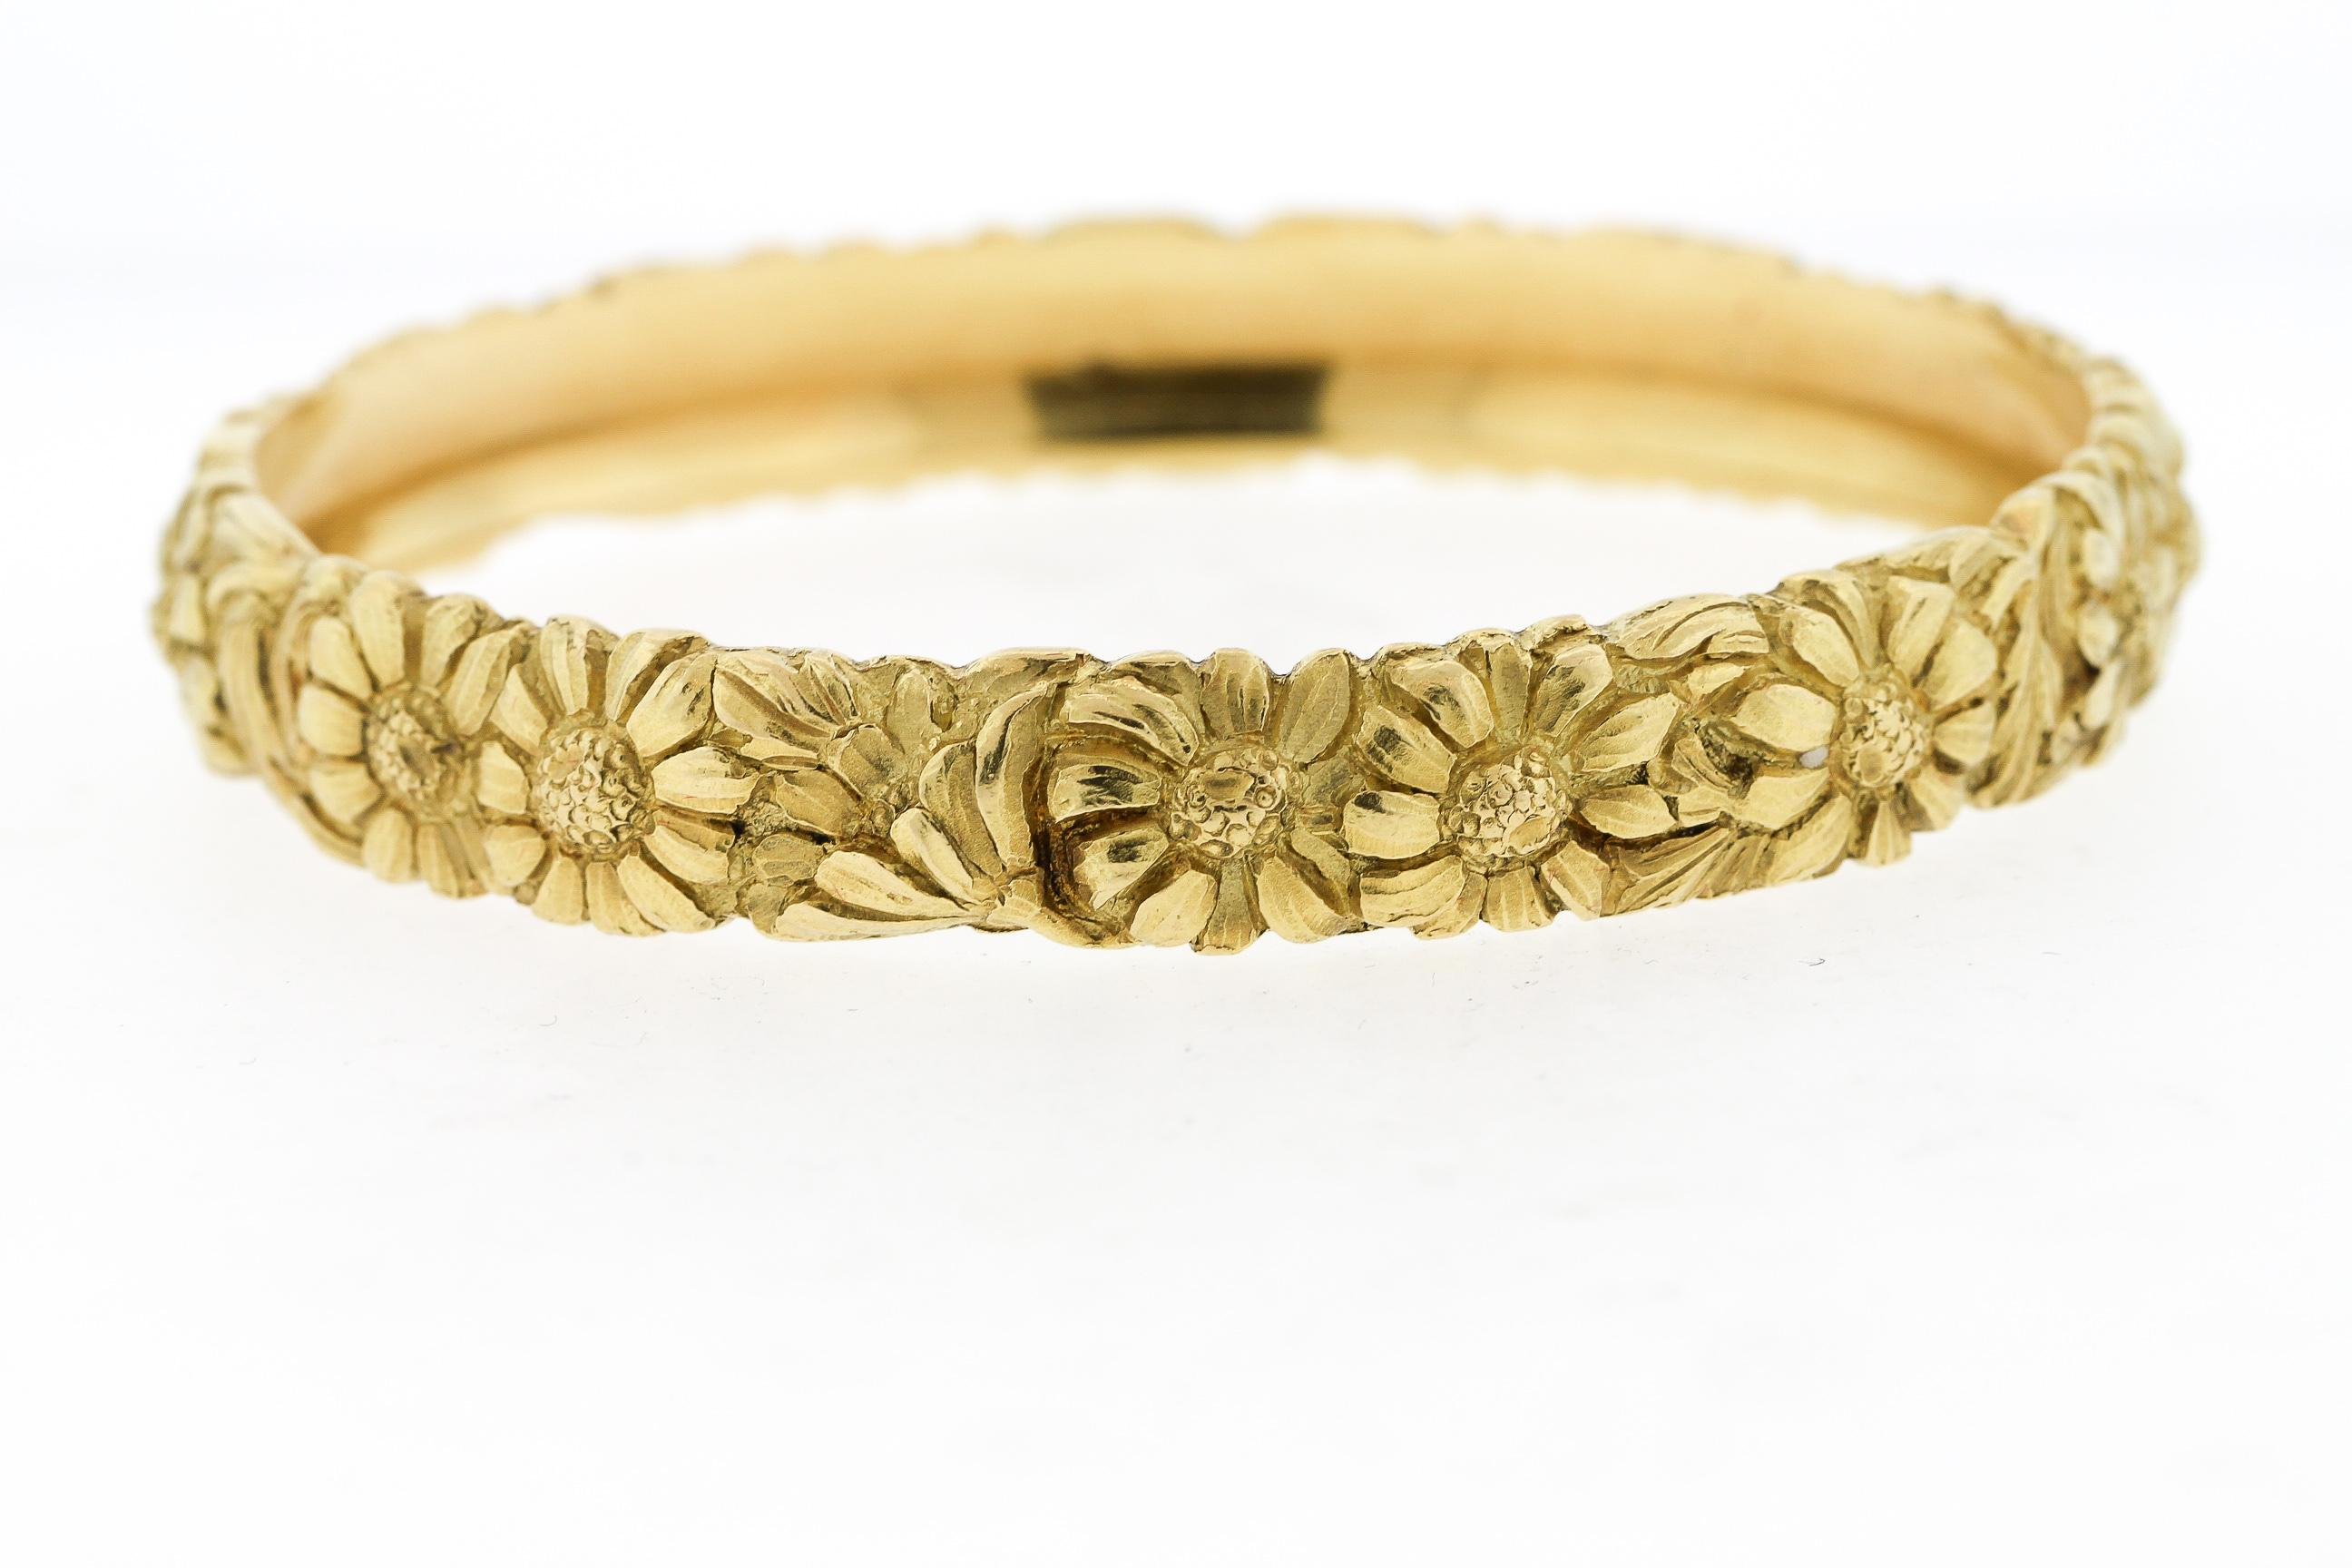 180cd11c8 Antique French Engraved Solid 18 Karat Yellow Gold Bangle with Daisies For  Sale at 1stdibs